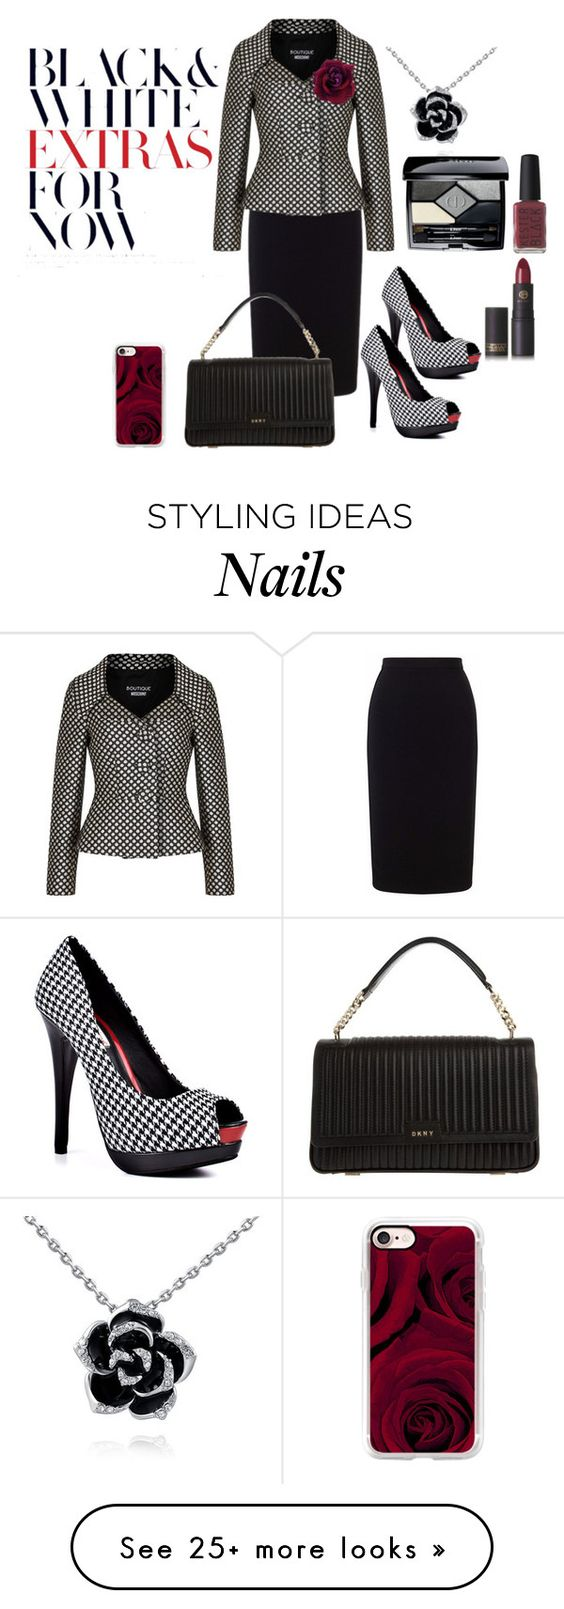 """Polka dot blazer"" by janie-xox on Polyvore featuring Two Lips, Roland Mouret, Boutique Moschino, DKNY, Casetify, Christian Dior, Kester Black and Lipstick Queen"